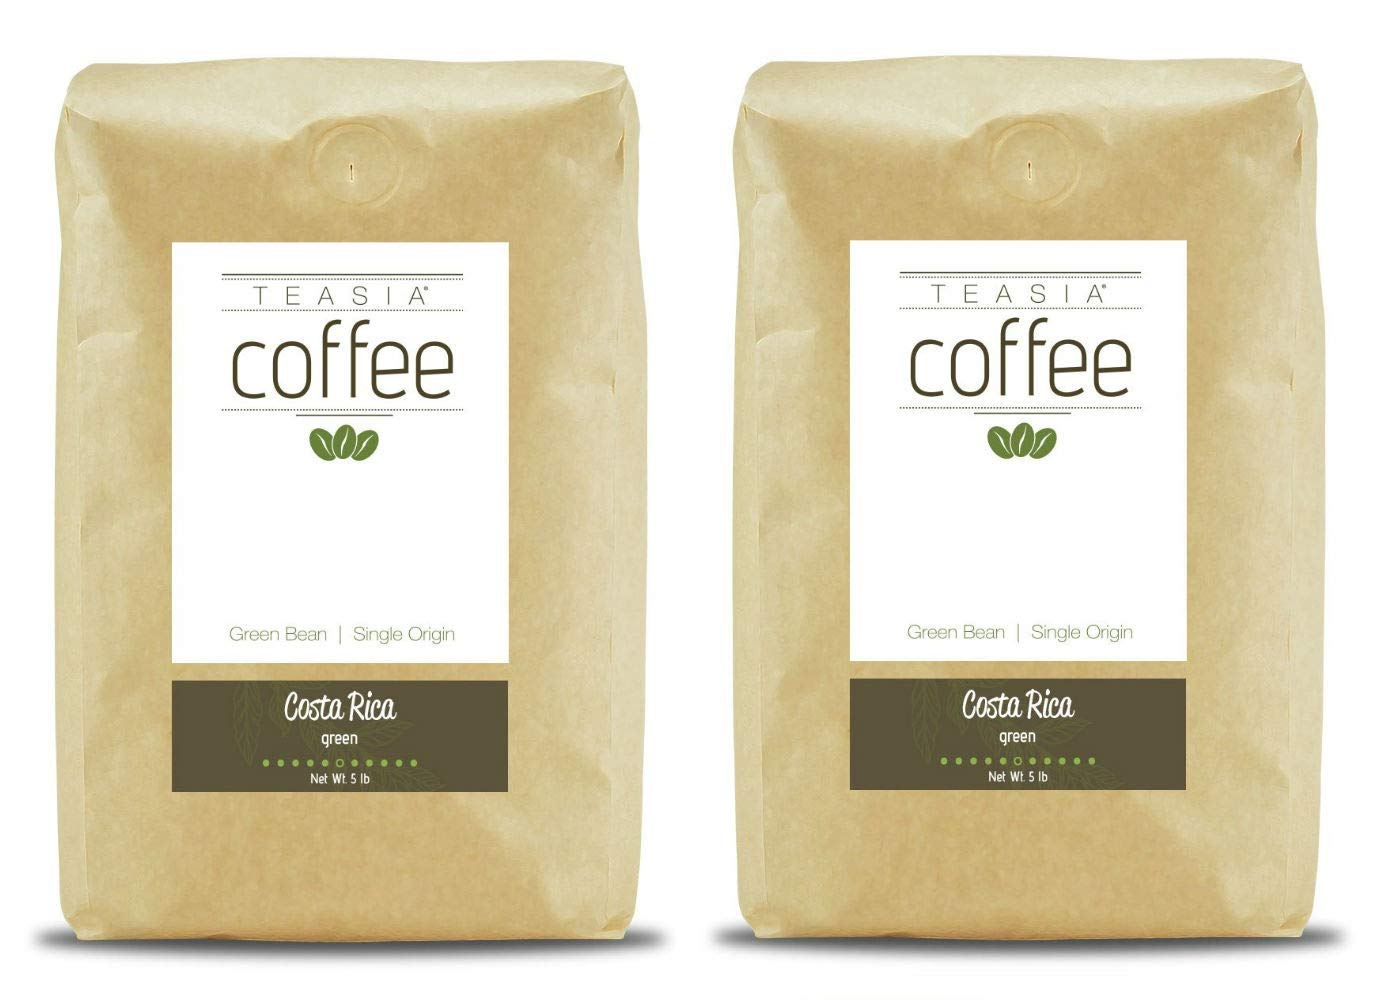 Teasia Coffee, Costa Rica, Single Origin Fair Trade, Green Unroasted Whole Coffee Beans, 5-Pound Bag (2-Pack)